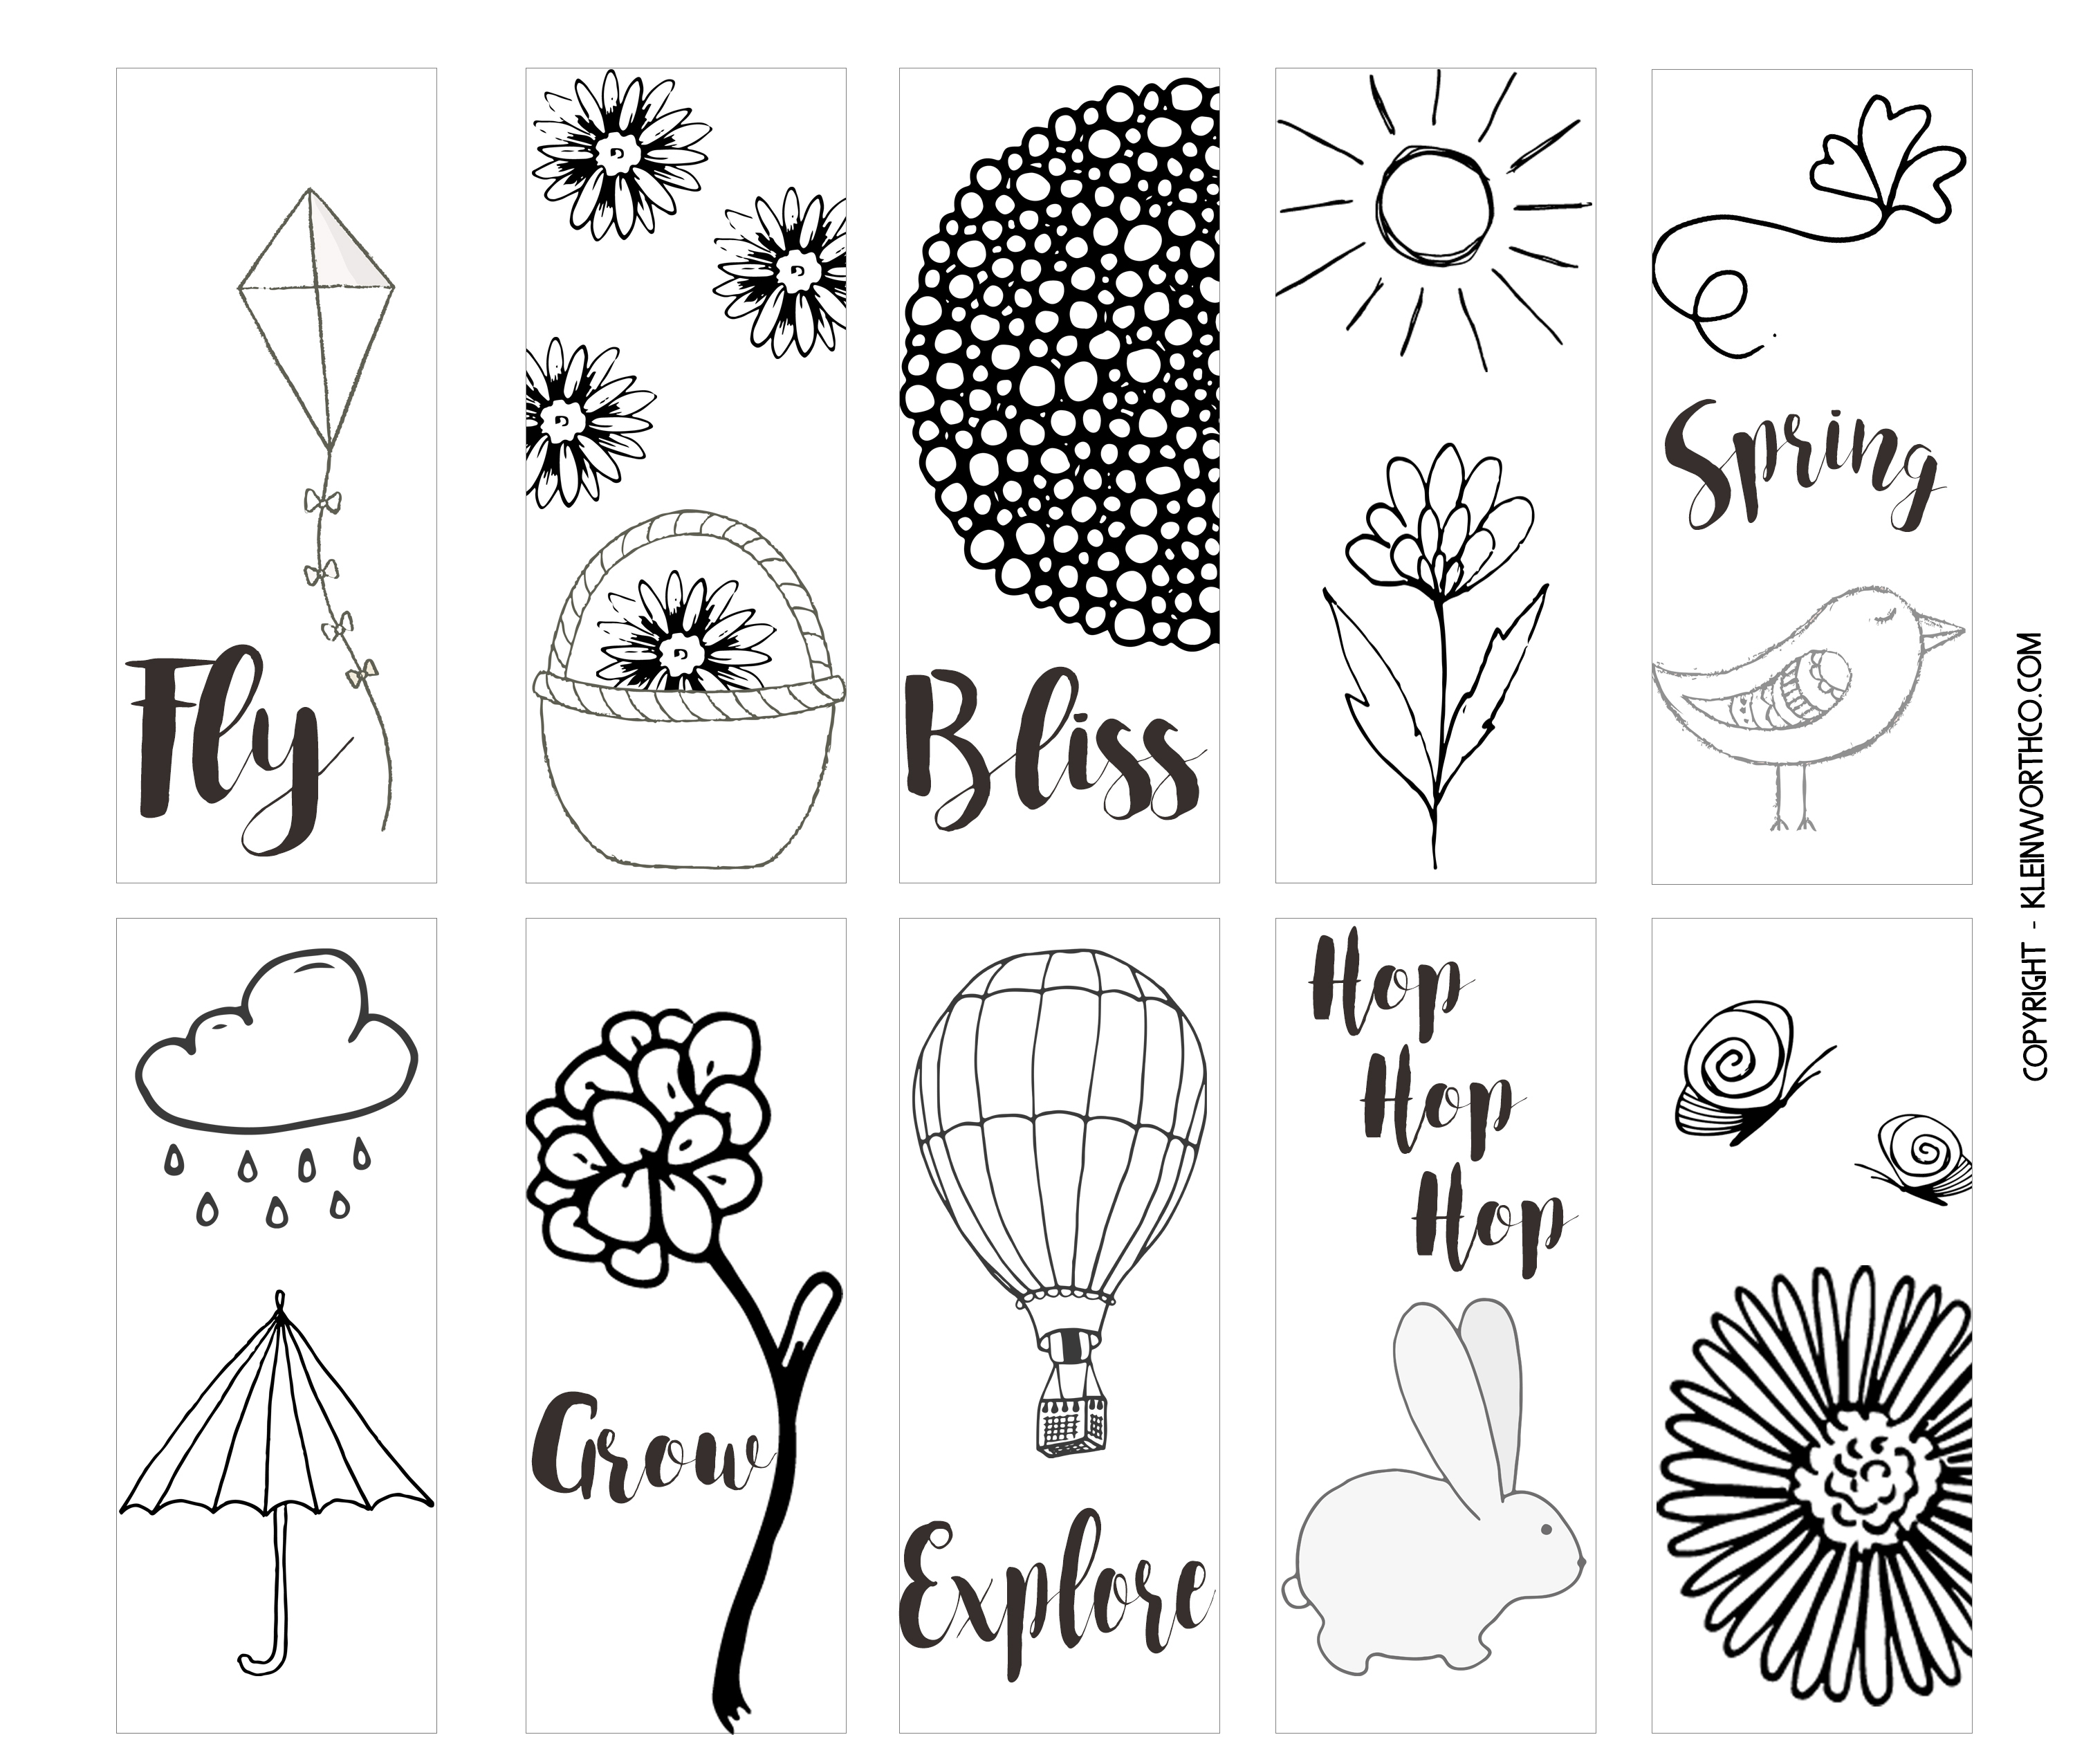 Spring Printable Coloring Page Bookmarks - Kleinworth & Co - Free Printable Spring Bookmarks